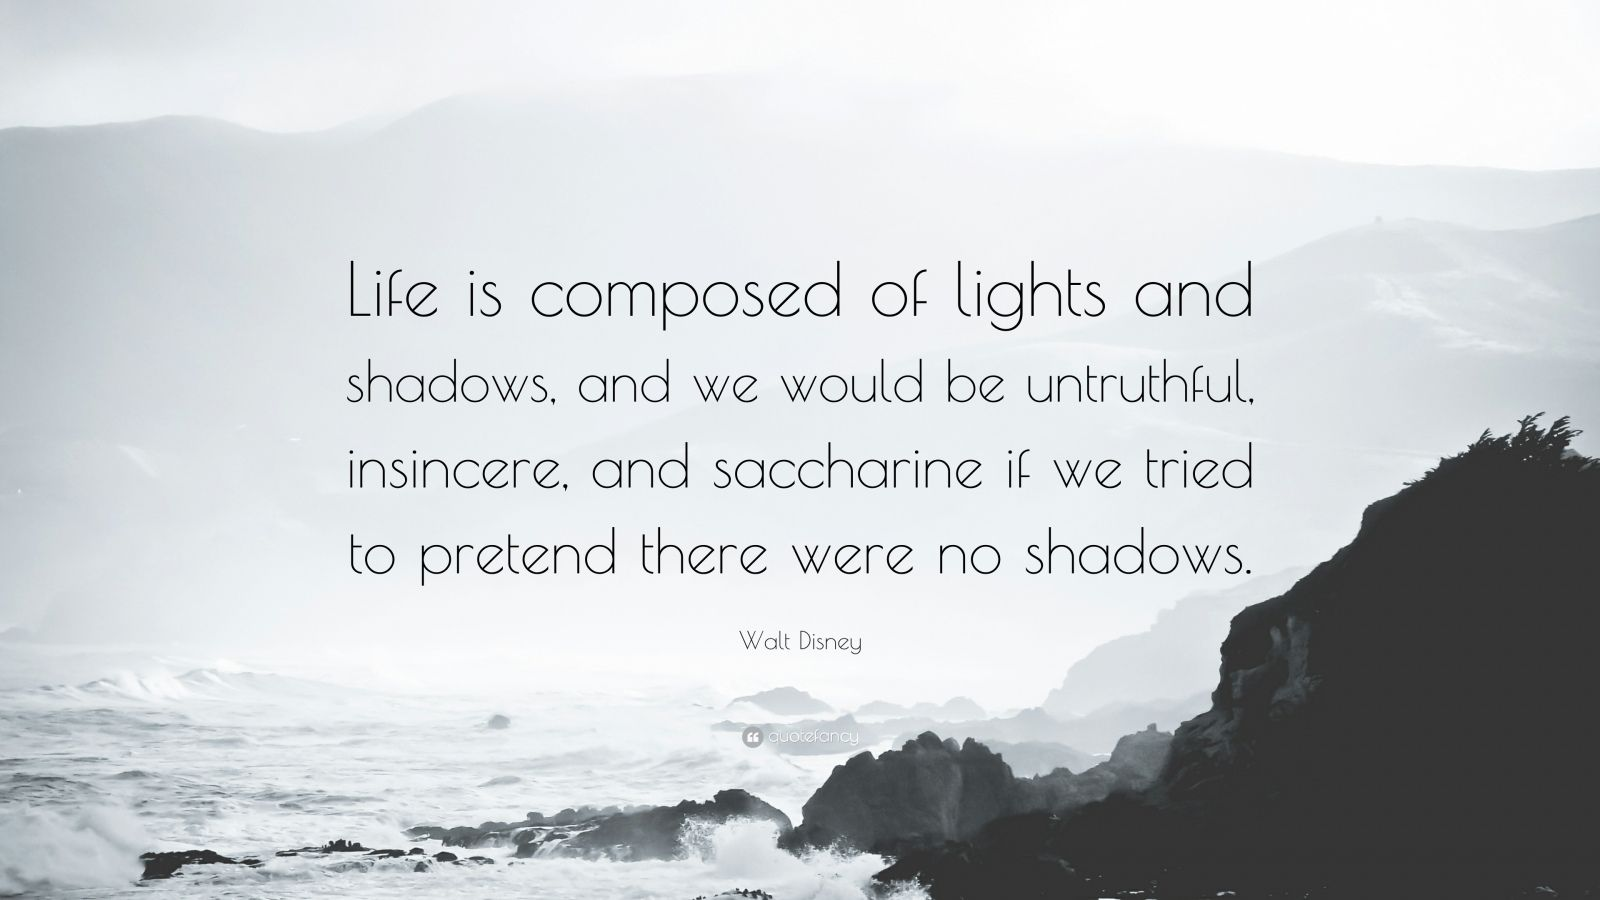 """Walt Disney Quote: """"Life is composed of lights and shadows, and we would be untruthful, insincere, and saccharine if we tried to pretend there were no shadows."""""""